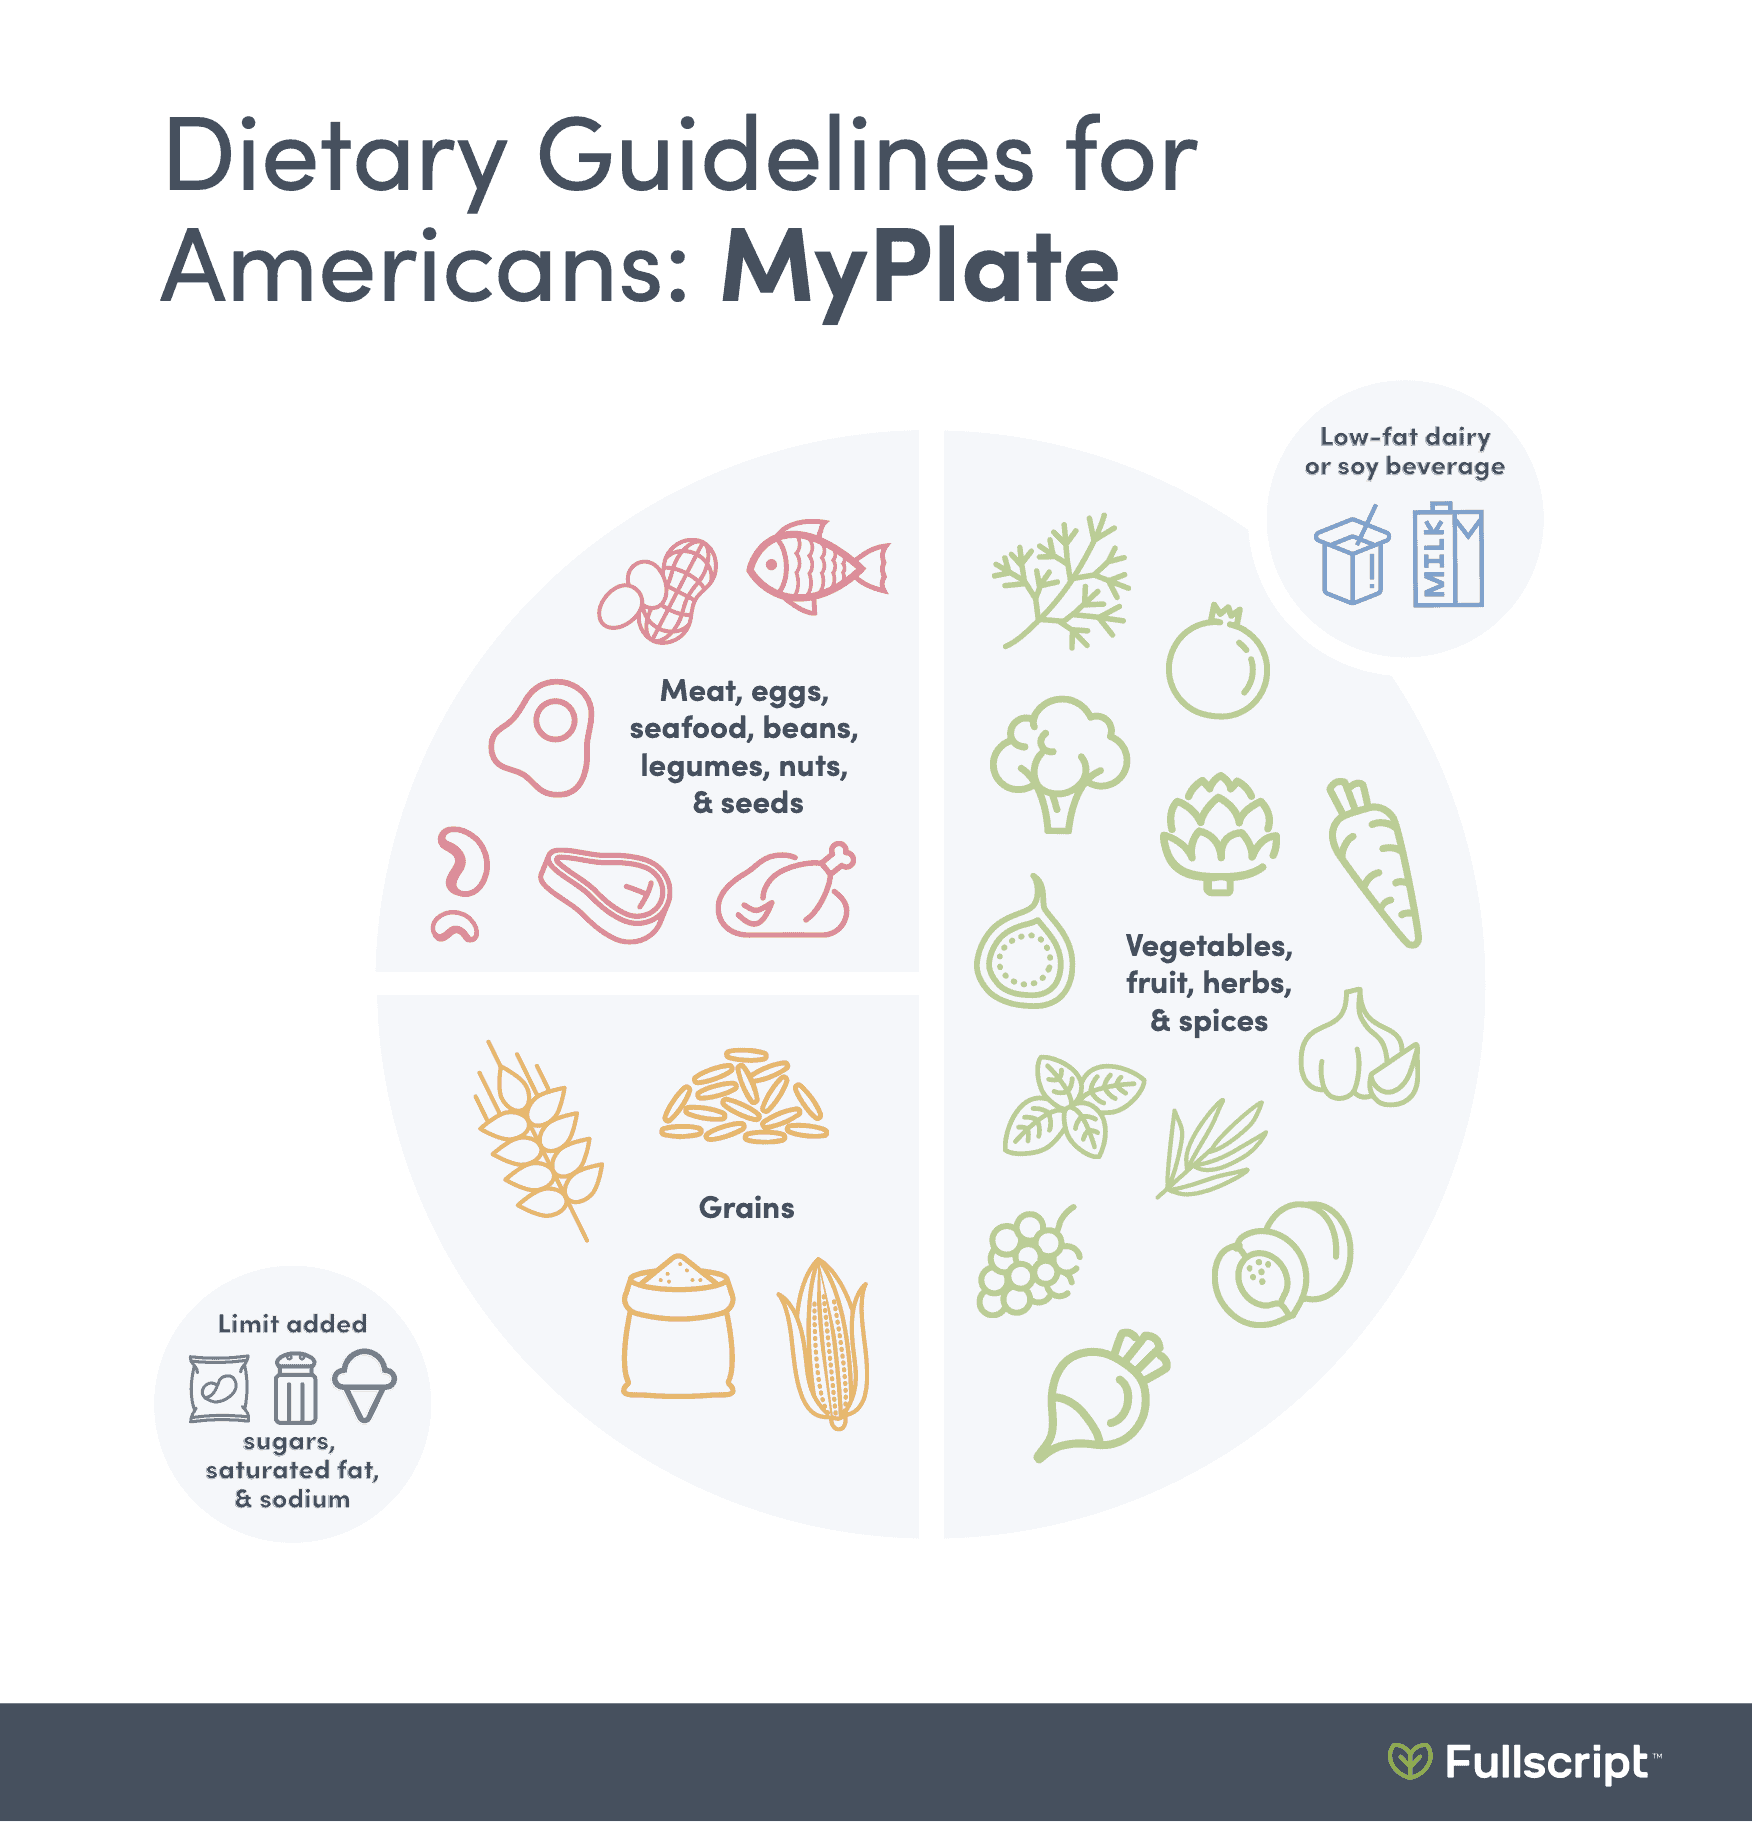 Dietary guidelines for Americans infographic